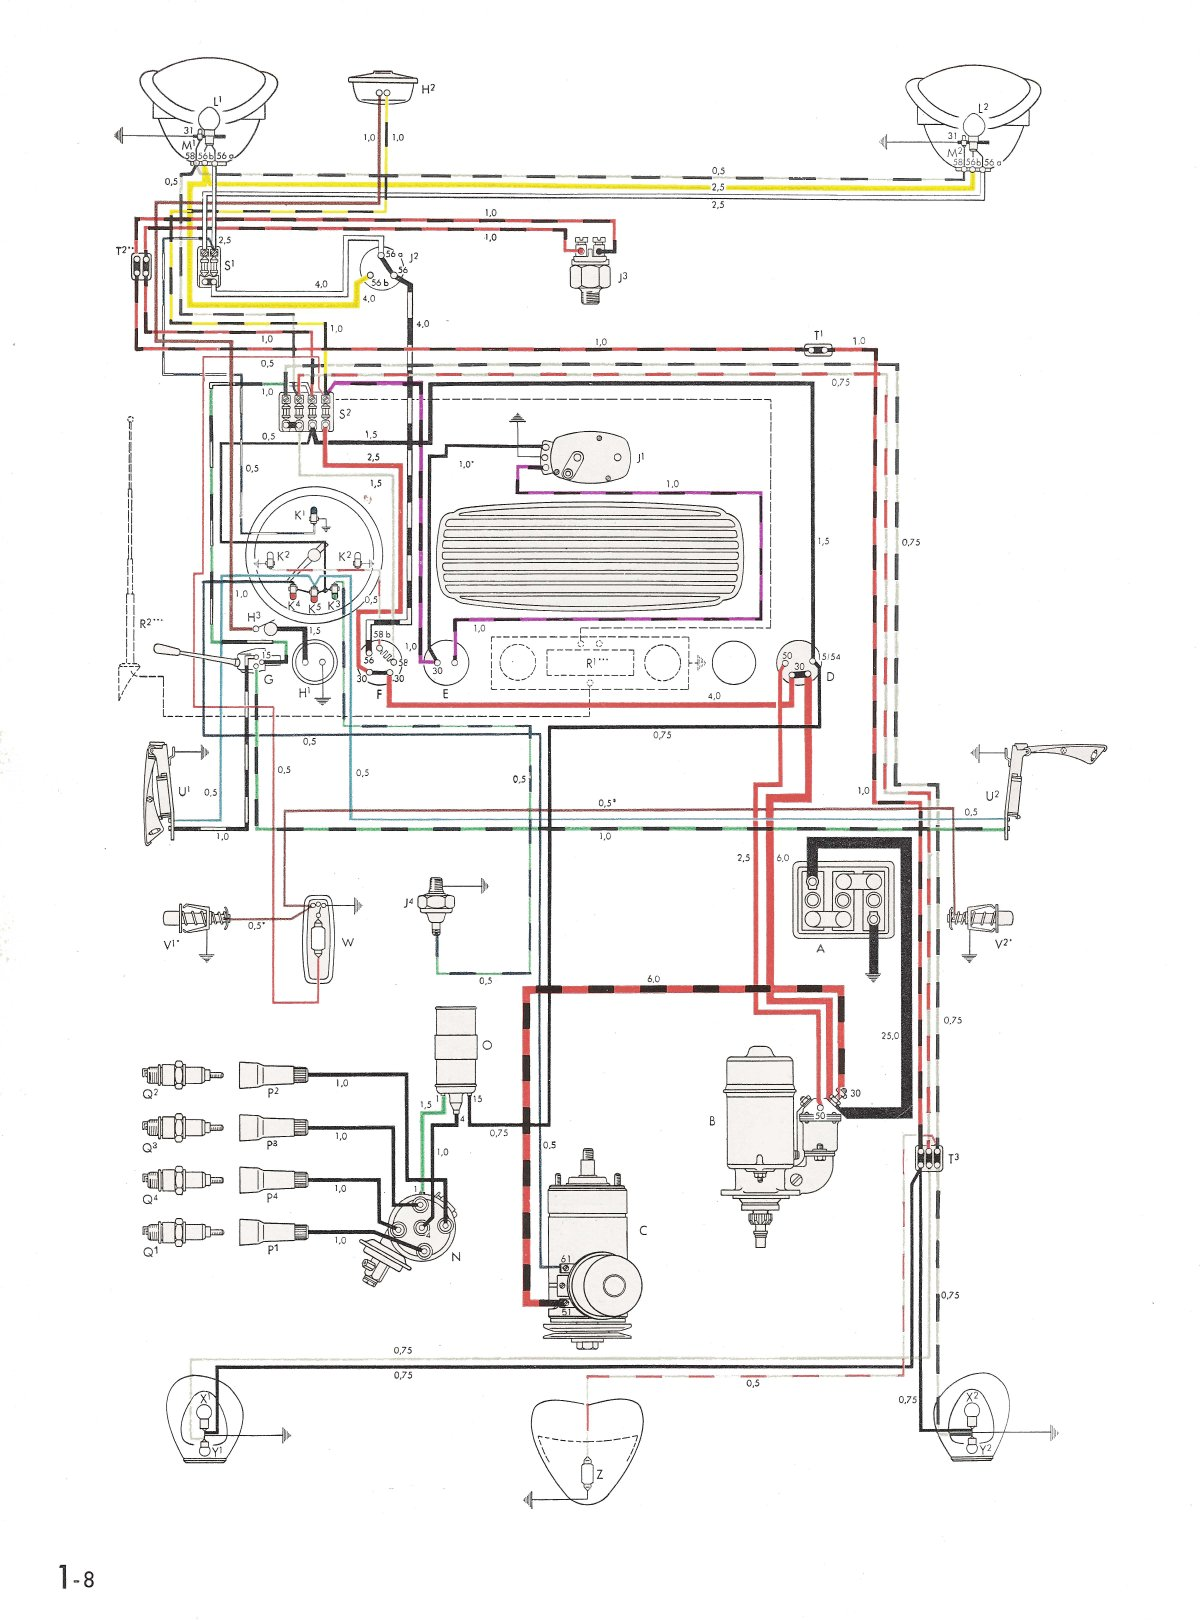 1979 vw super beetle wiring diagram product wiring diagrams \u2022 1969 beetle wiring diagram color 79 vw beetle wiring diagram example electrical wiring diagram u2022 rh cranejapan co 1959 vw beetle wiring diagram 1969 vw wiring diagram